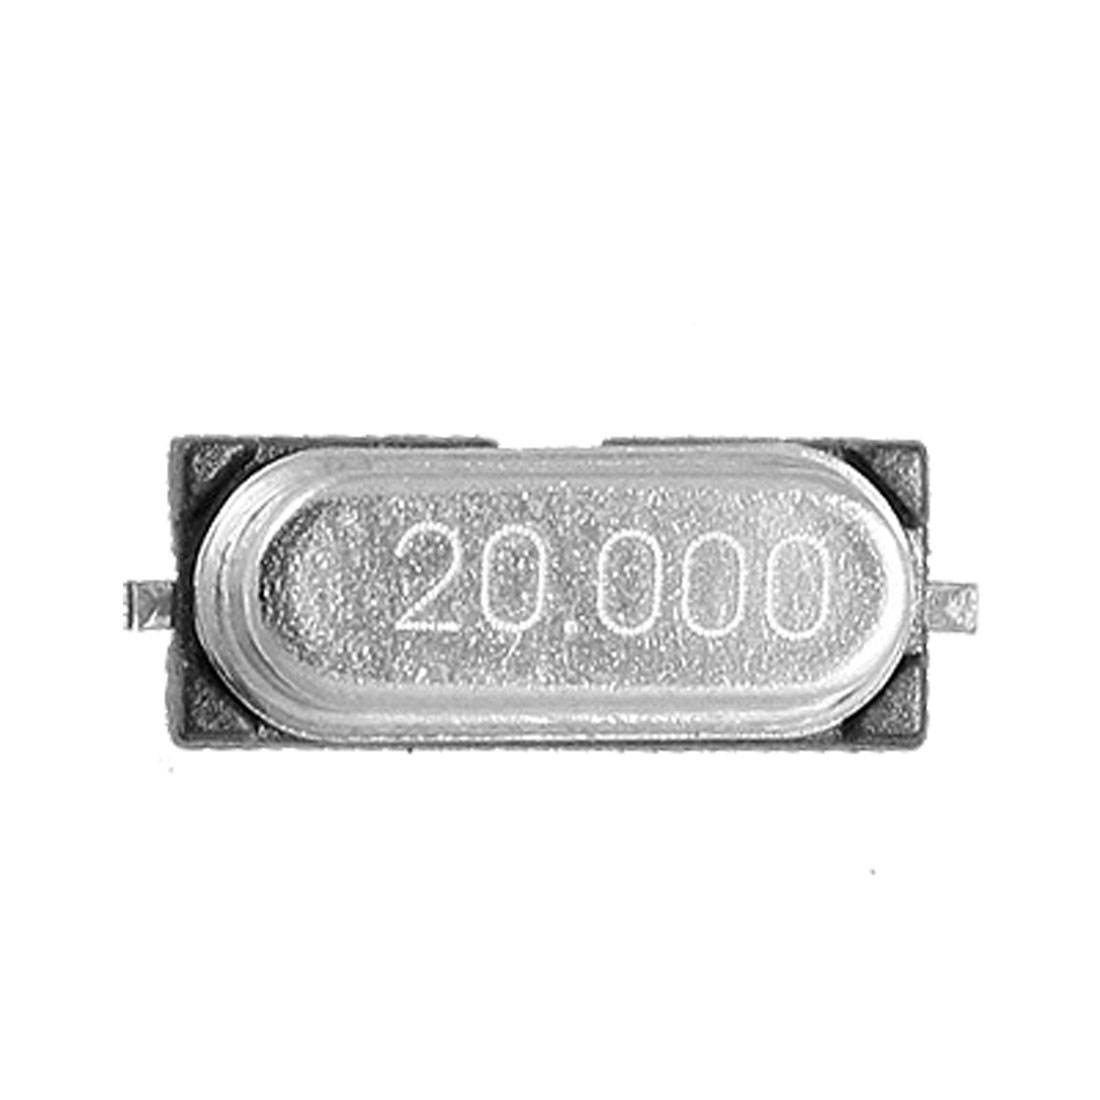 50-Pcs-HC-49S-20MHZ-SMD-Crystal-Oscillator-Low-Profile